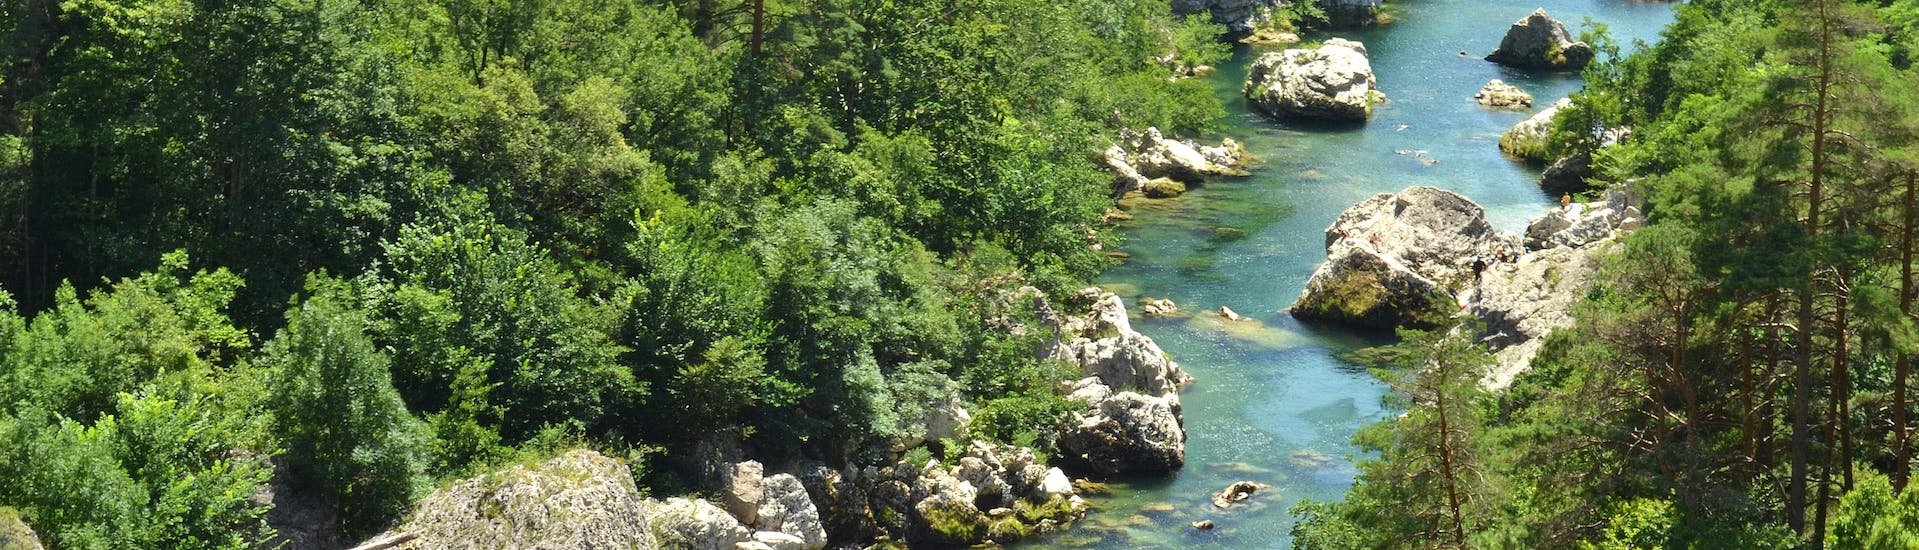 Aerial view of the Tarn Gorges, one of the perfect places for canyoning in France.